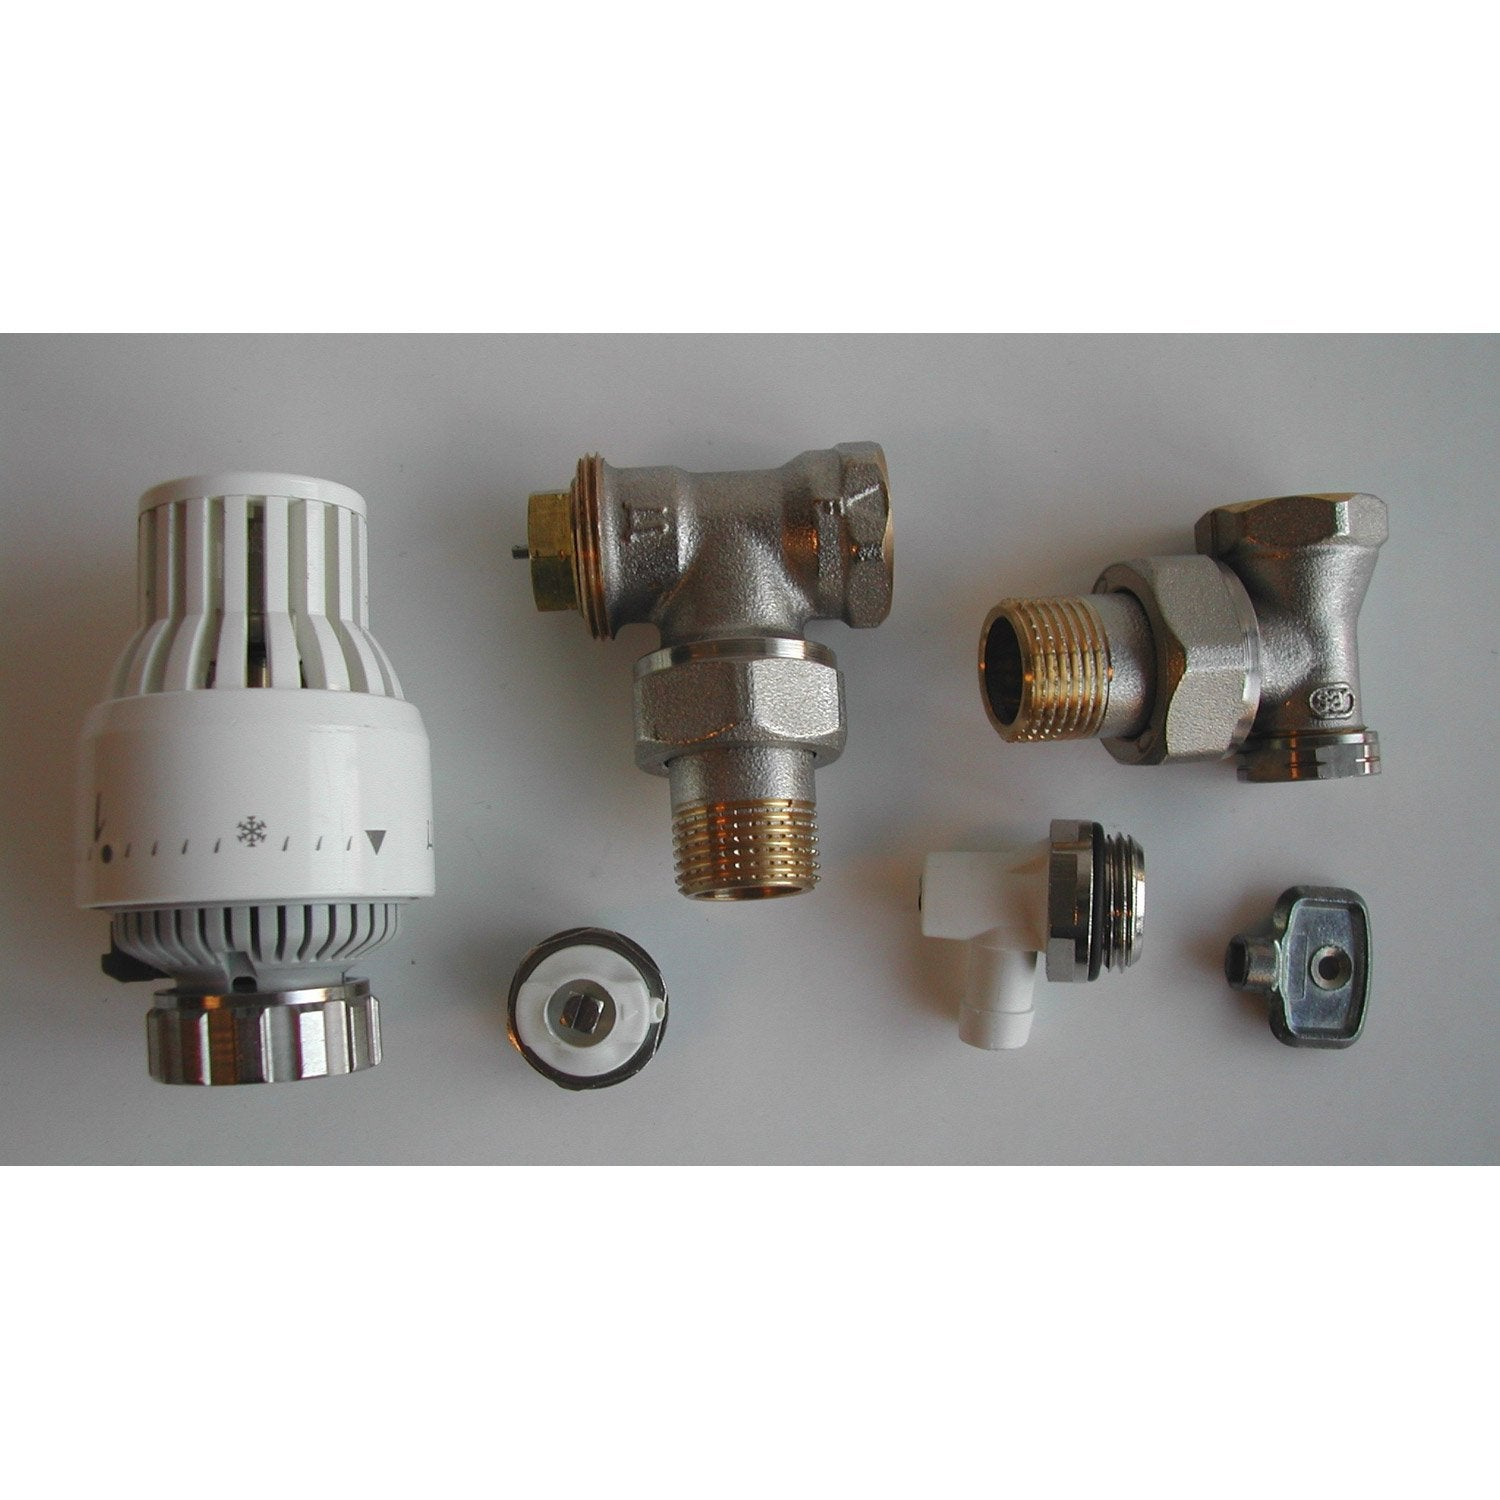 Kit Robinet Thermostatique Equerre 1 2 Male Femelle Laiton Blanc